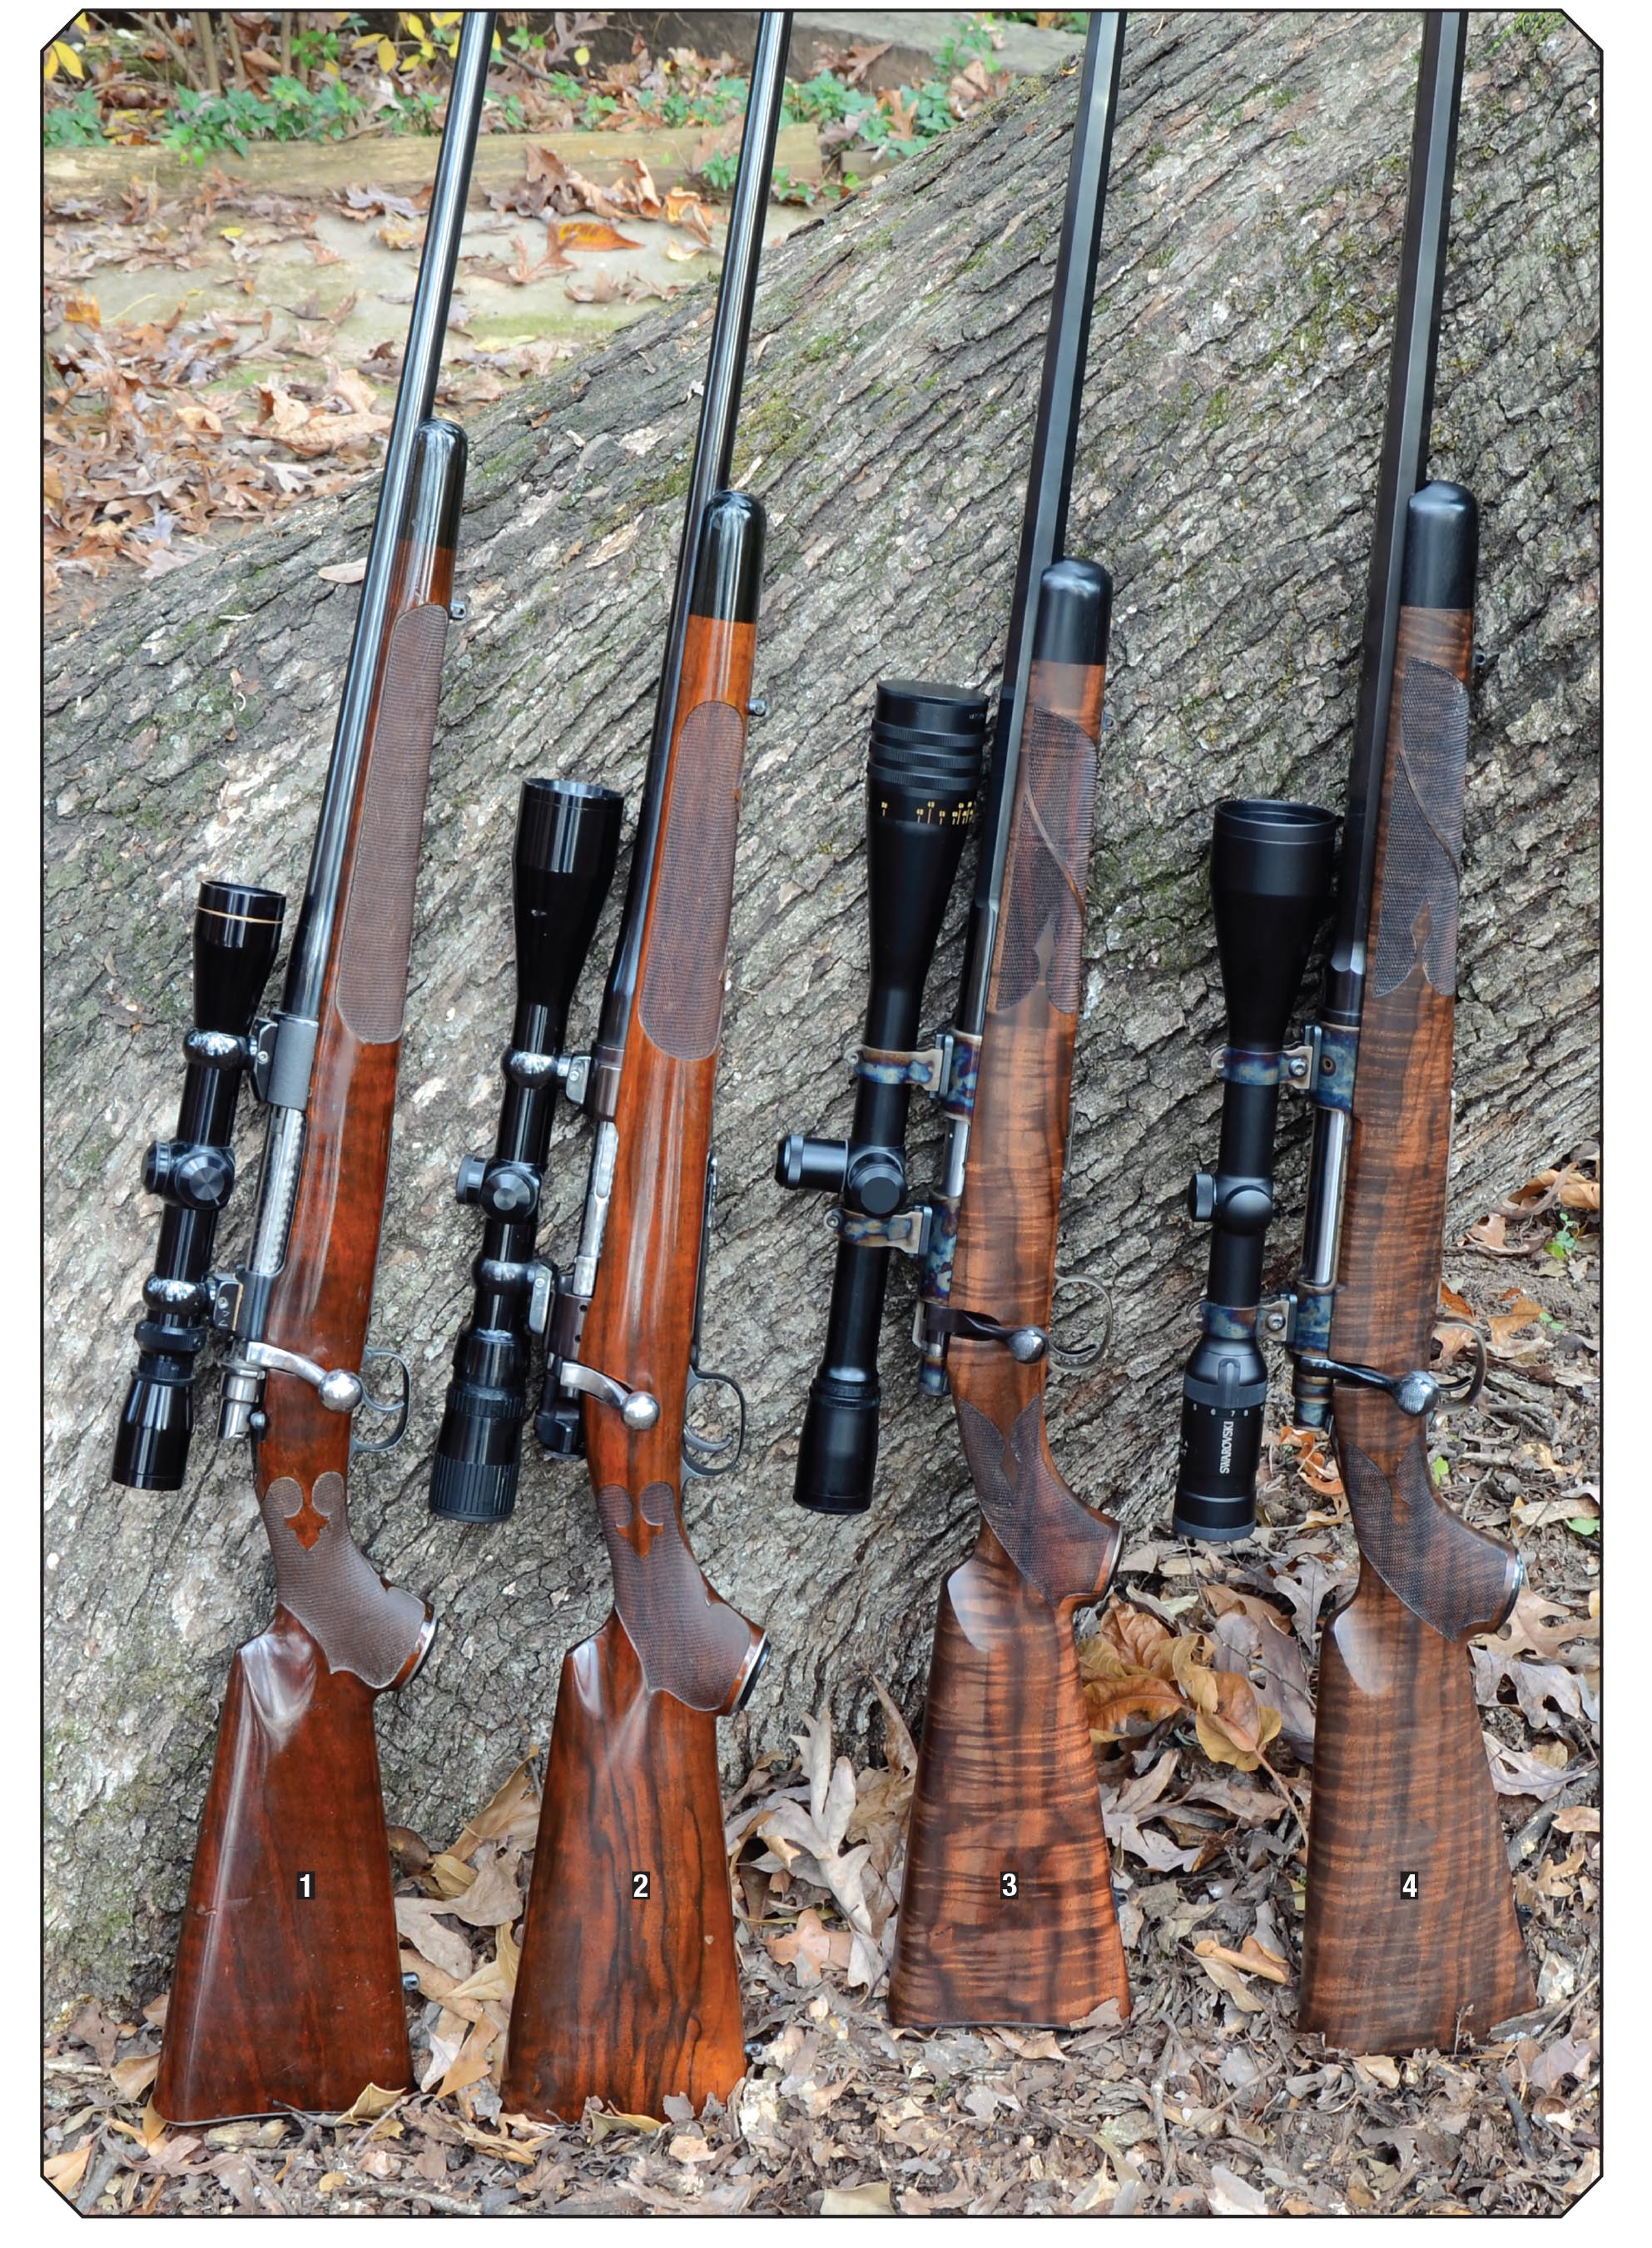 Layne's rifles include a (1) Talley custom '98 Mauser .280 Remington (formerly .25-06), (2) Talley custom 1911 Springfield .22 LR, (3) Cooper Model 57M Western Classic .22 LR and a (4) Cooper Model 52 .25-06.